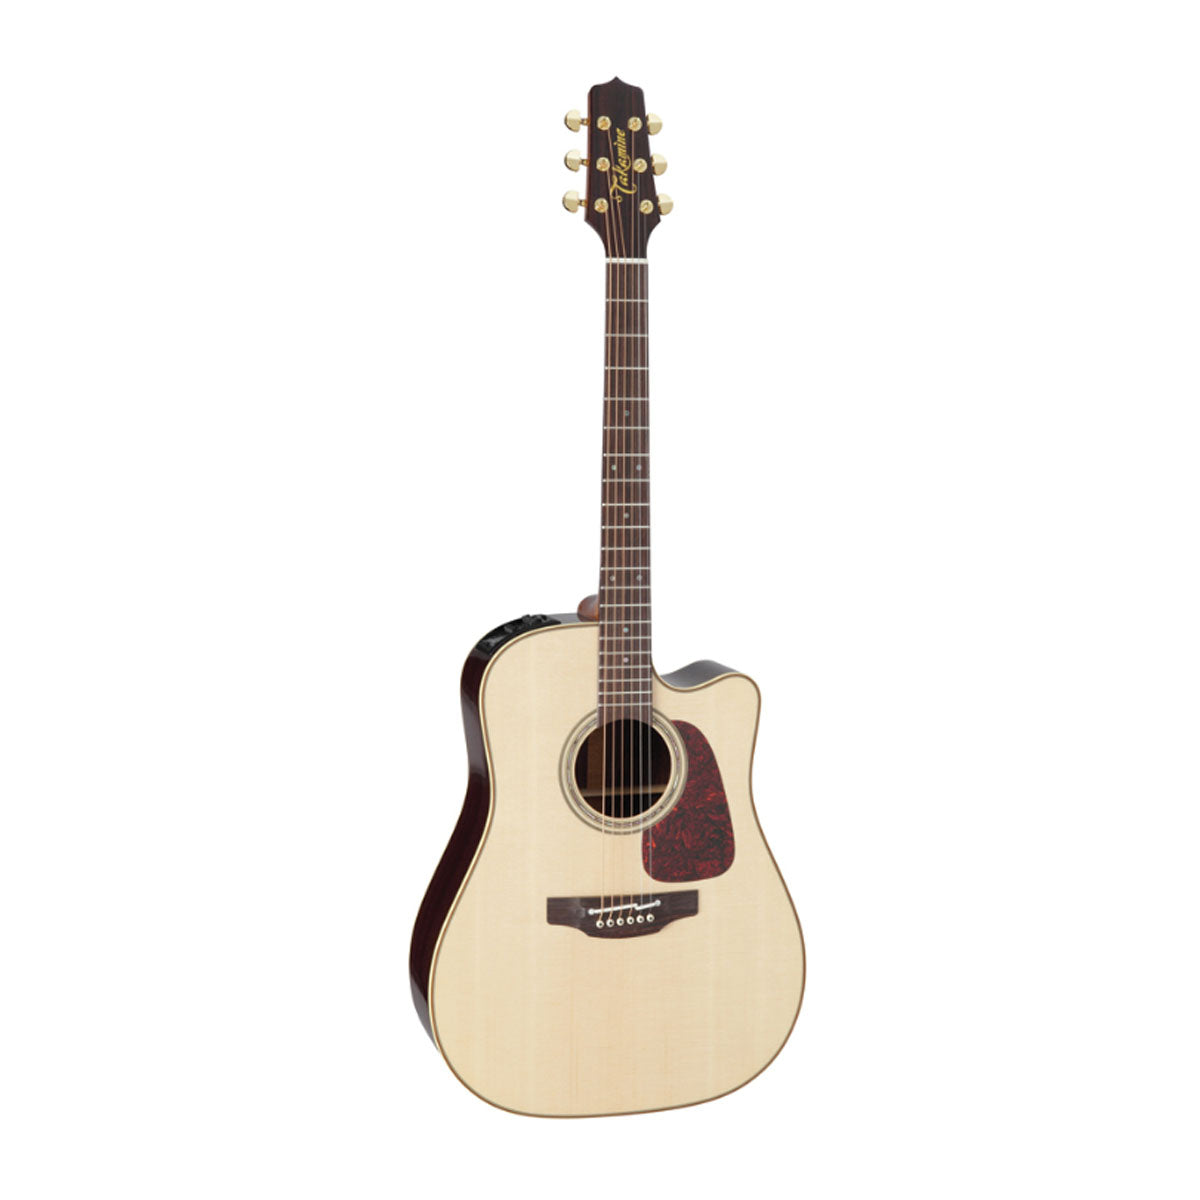 Takamine P5DC Pro Series 5 Acoustic Guitar Dreadnought Natural w/ Pickup